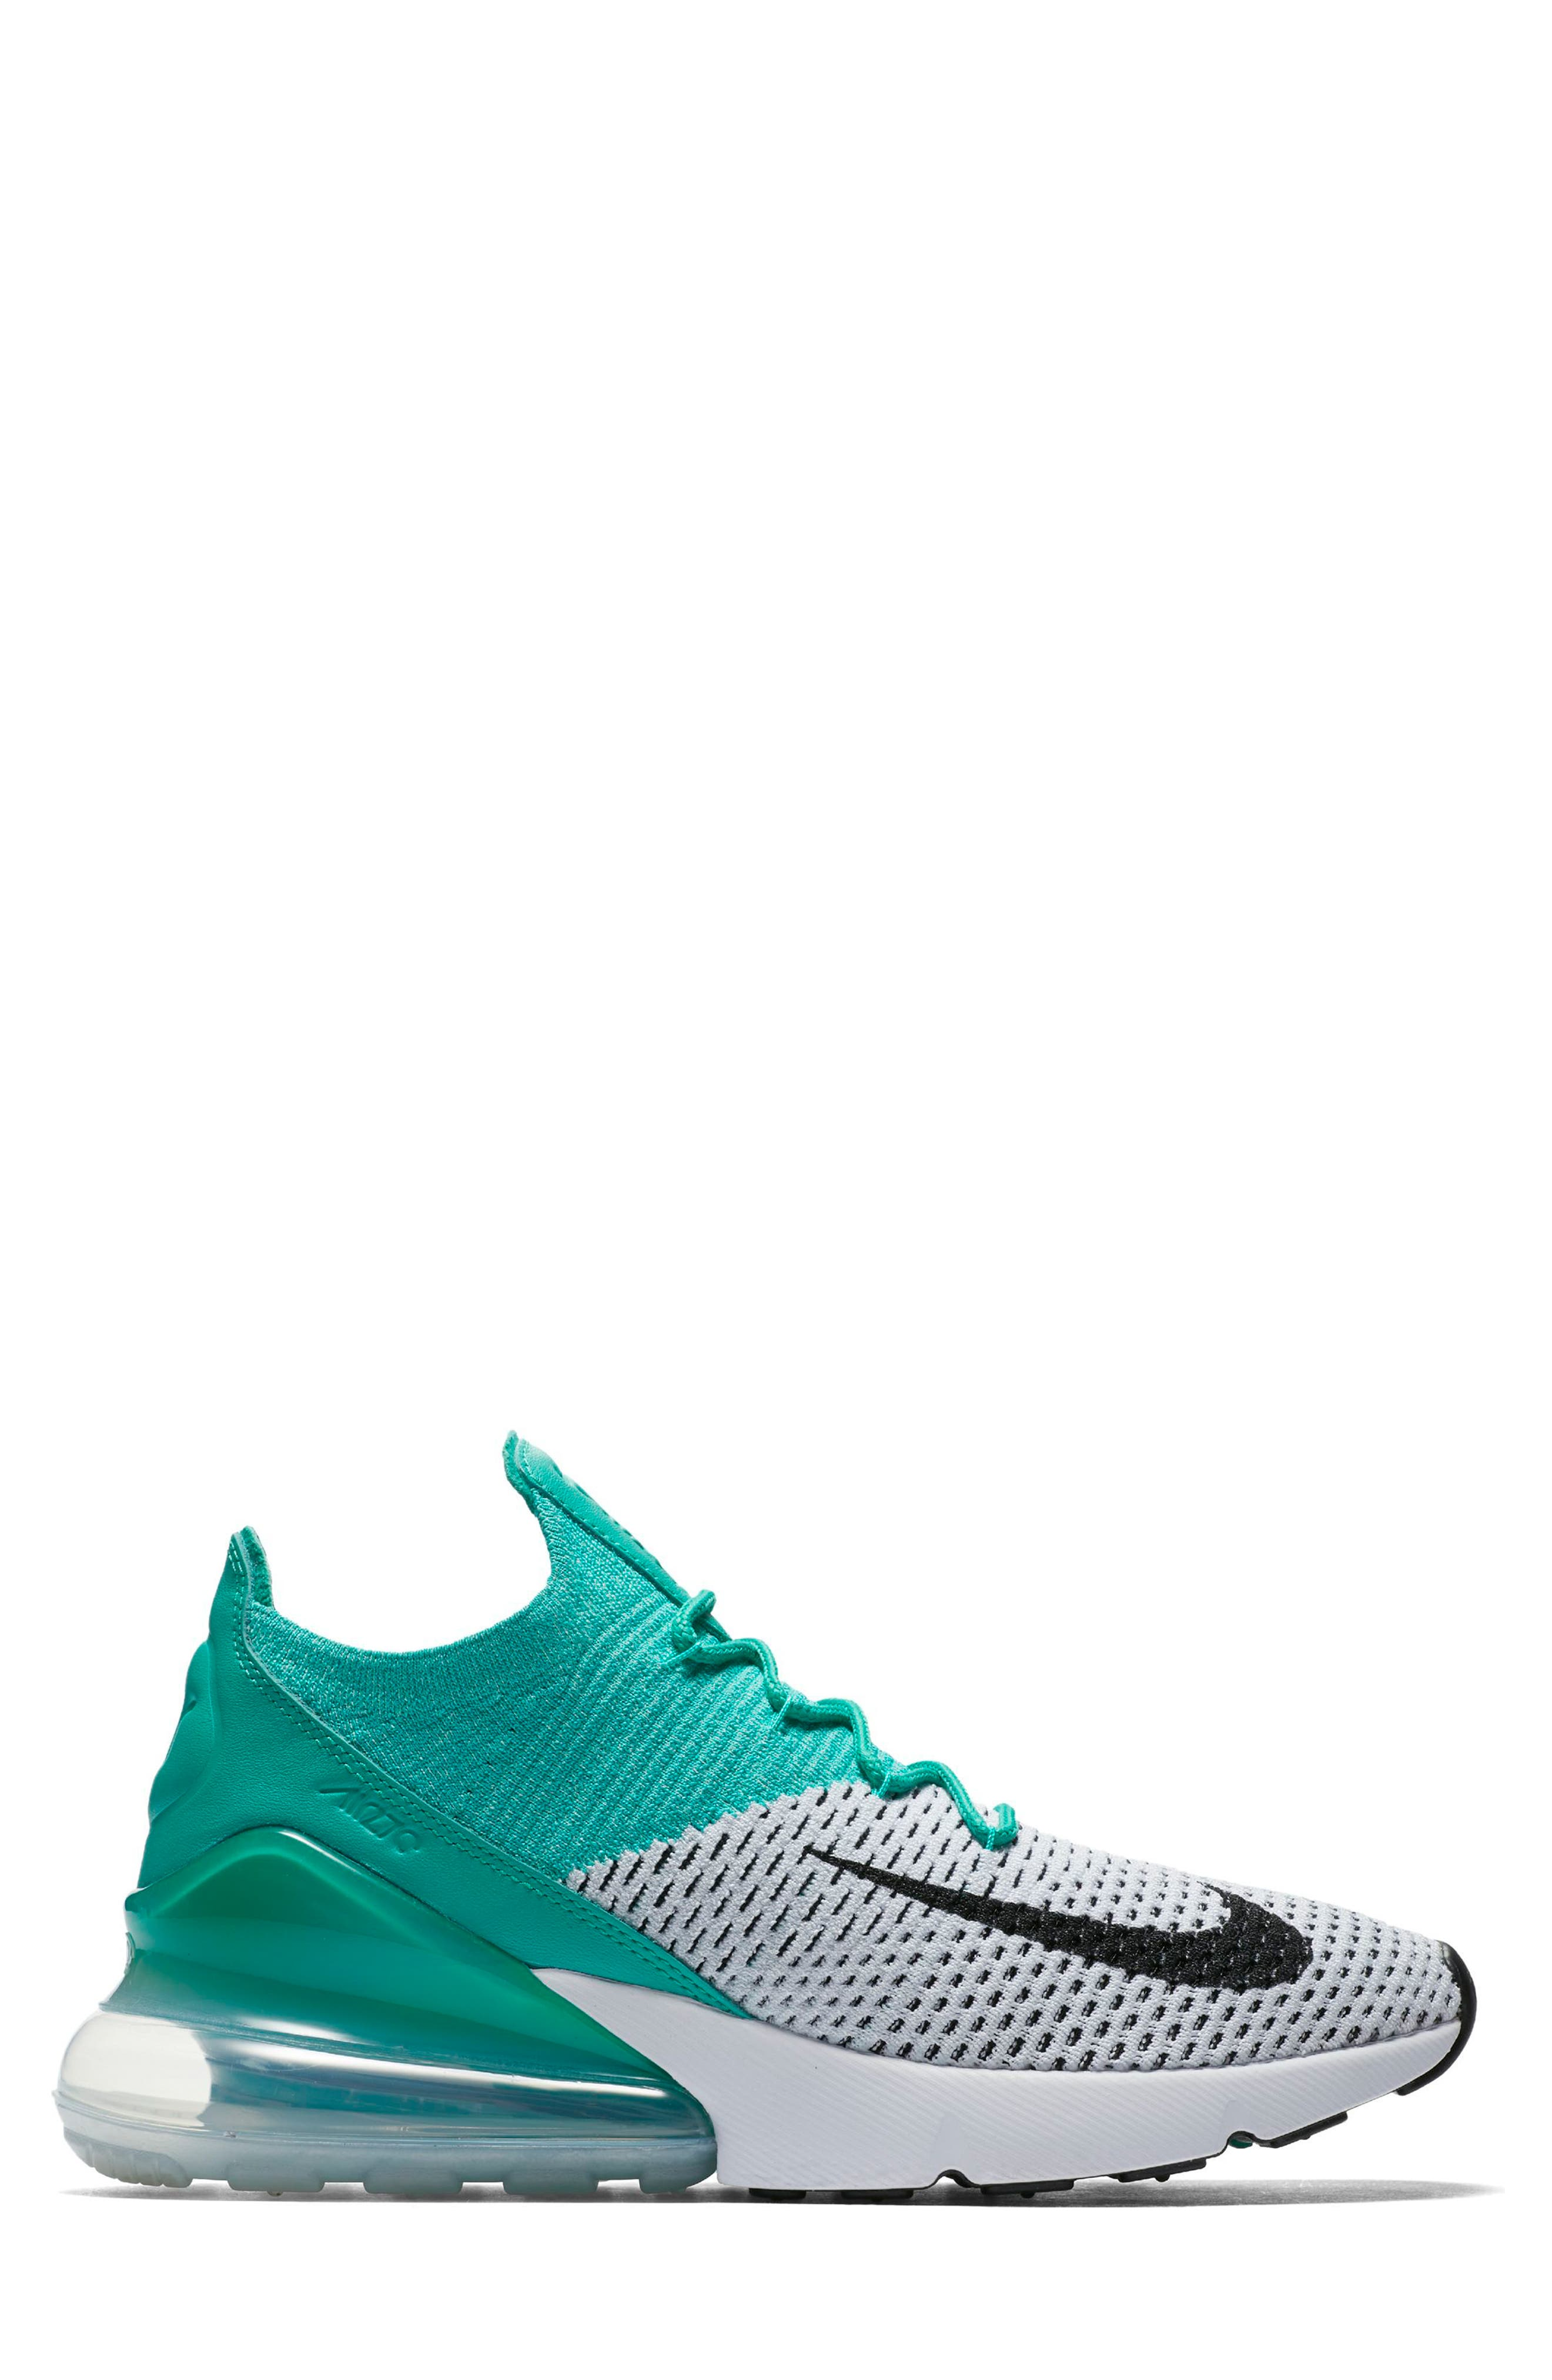 Air Max 270 Flyknit Sneaker,                             Alternate thumbnail 3, color,                             Emerald/ Black/ Pure Platinum